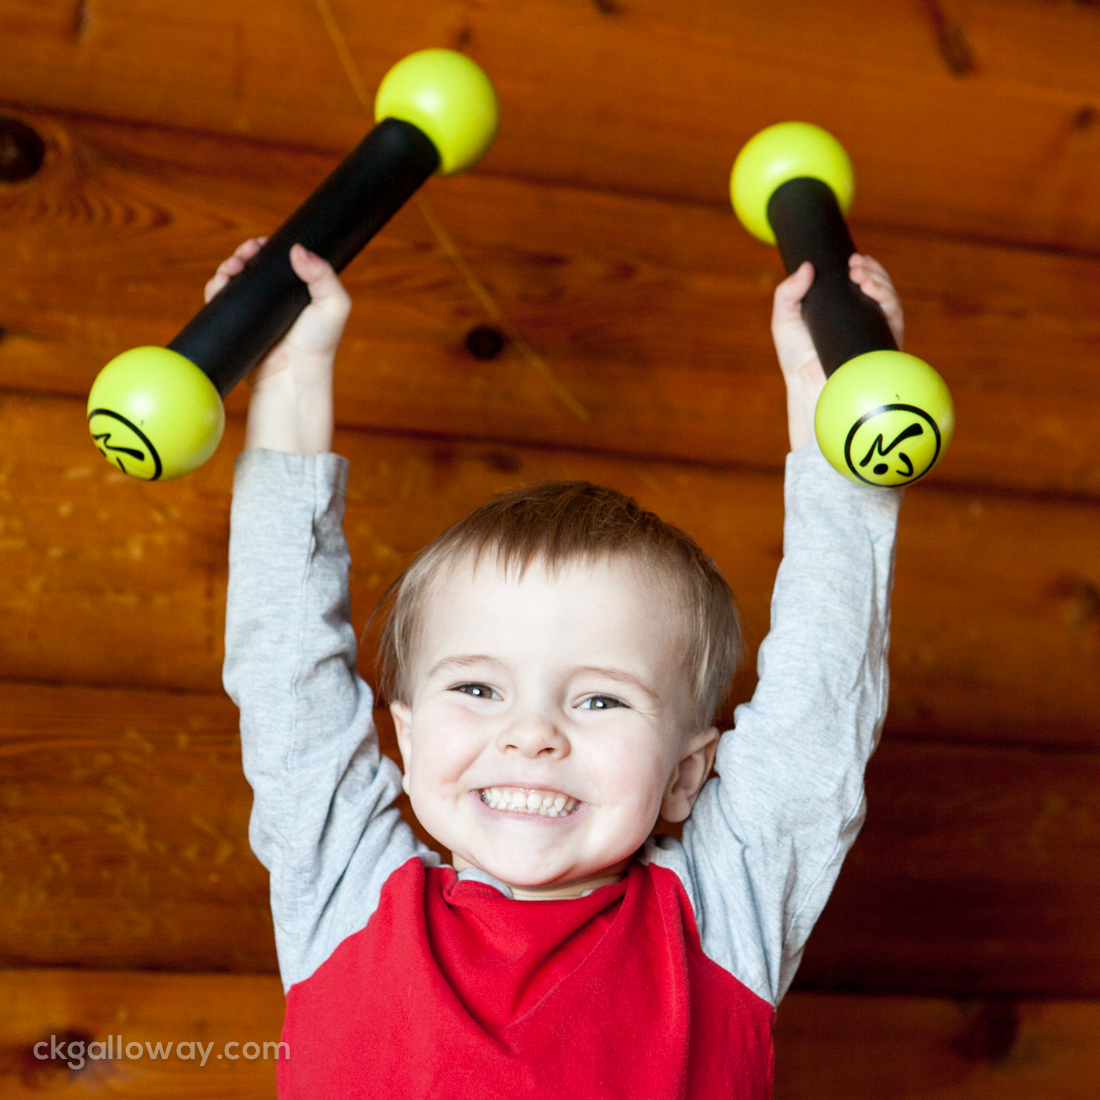 My three-year-old son Oscar with Zumba weights.